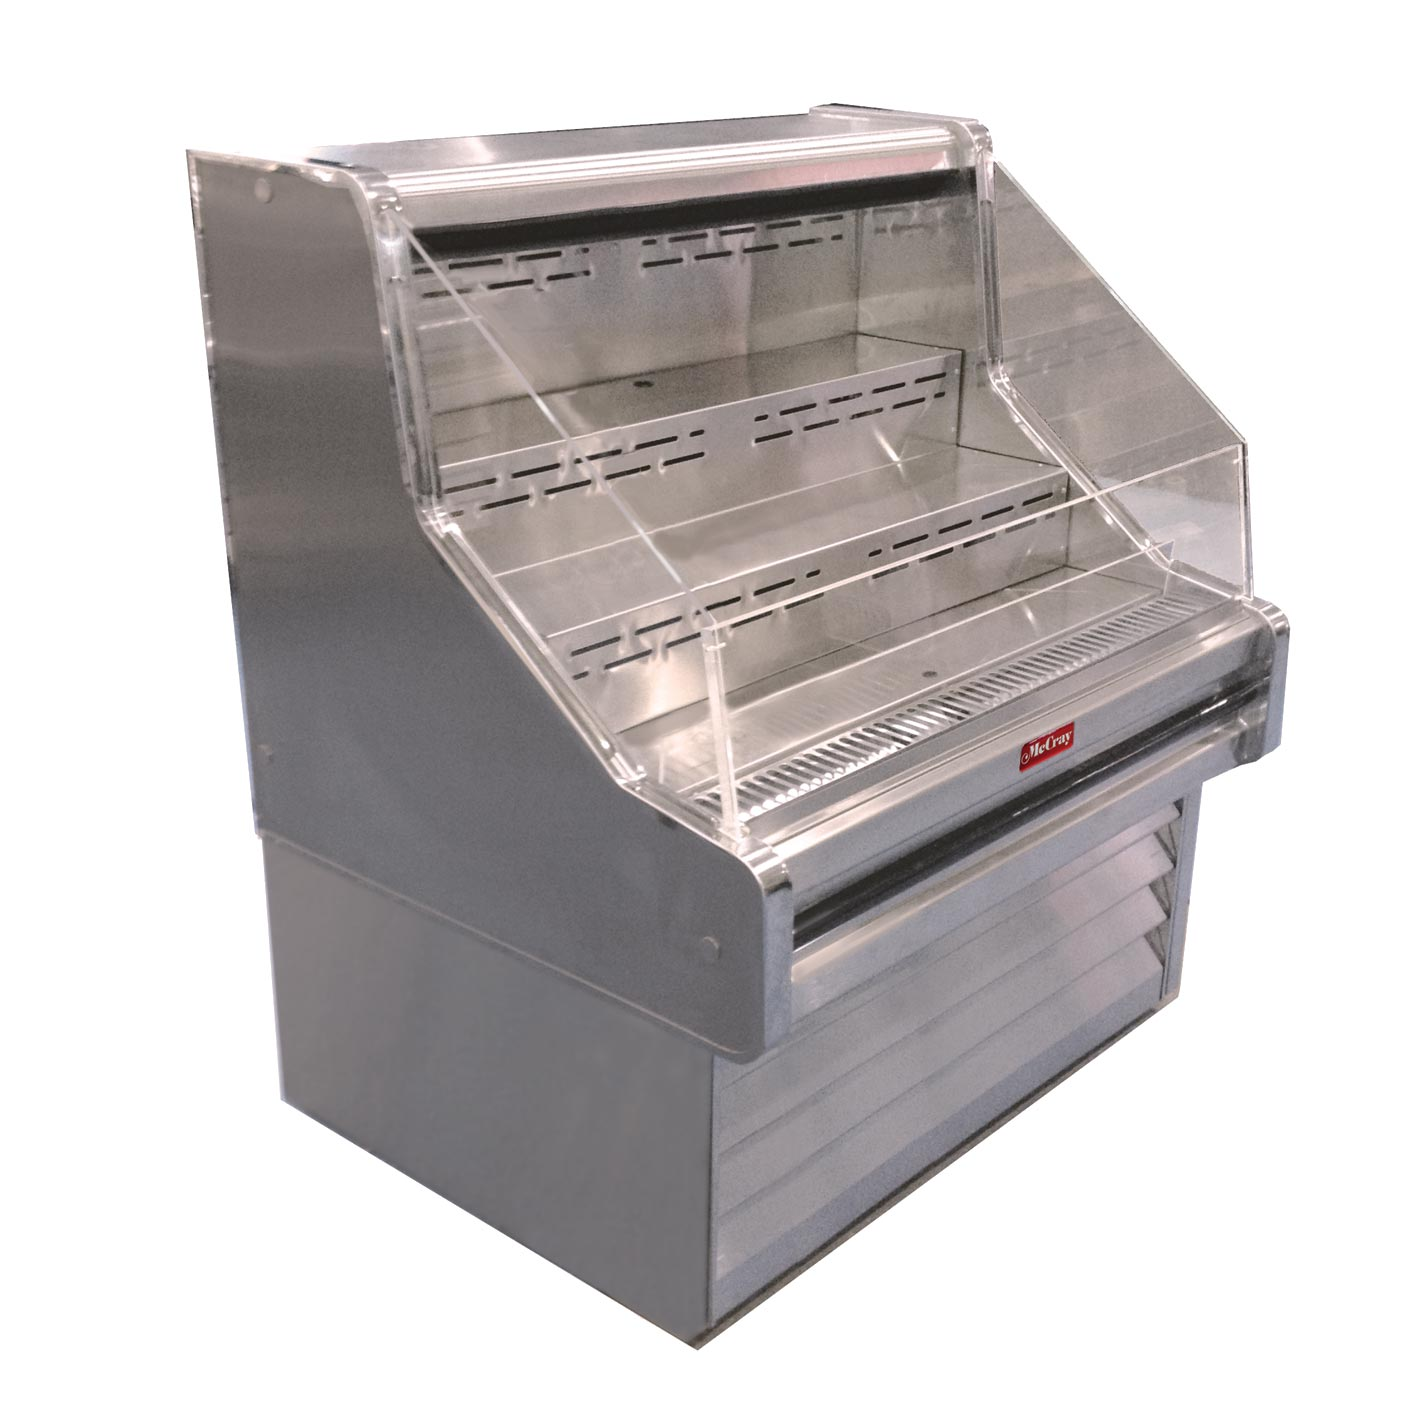 Howard-McCray R-OS35E-6 merchandiser, open refrigerated display